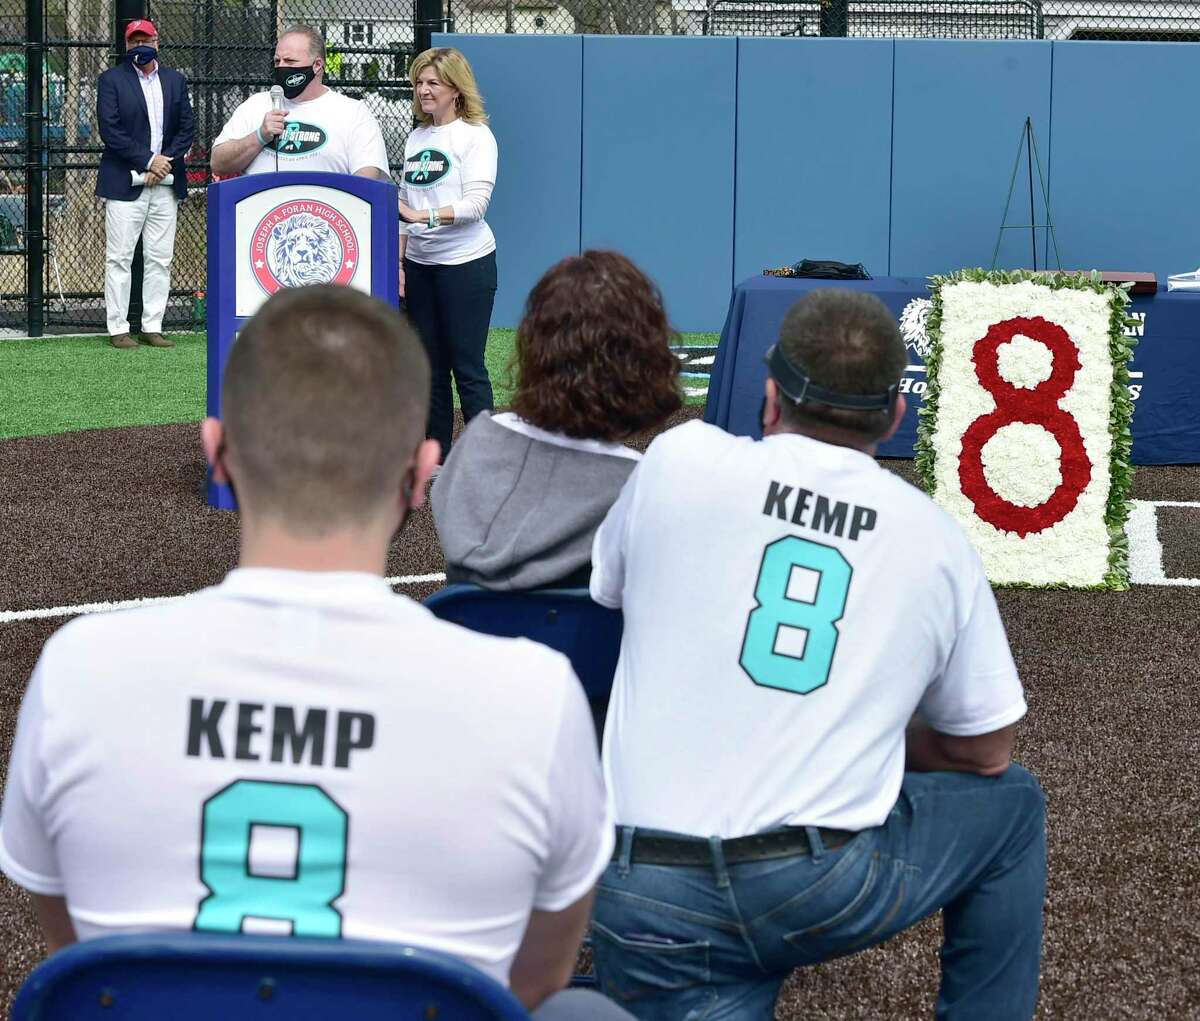 """Cliff and Melinda Kemp, the parents of Foran softball player Danielle """"Danni"""" Kemp, who lost her battle with cancer at 19, speak during the dedication of the Foran High School Danielle Kemp Memorial Softball Field."""